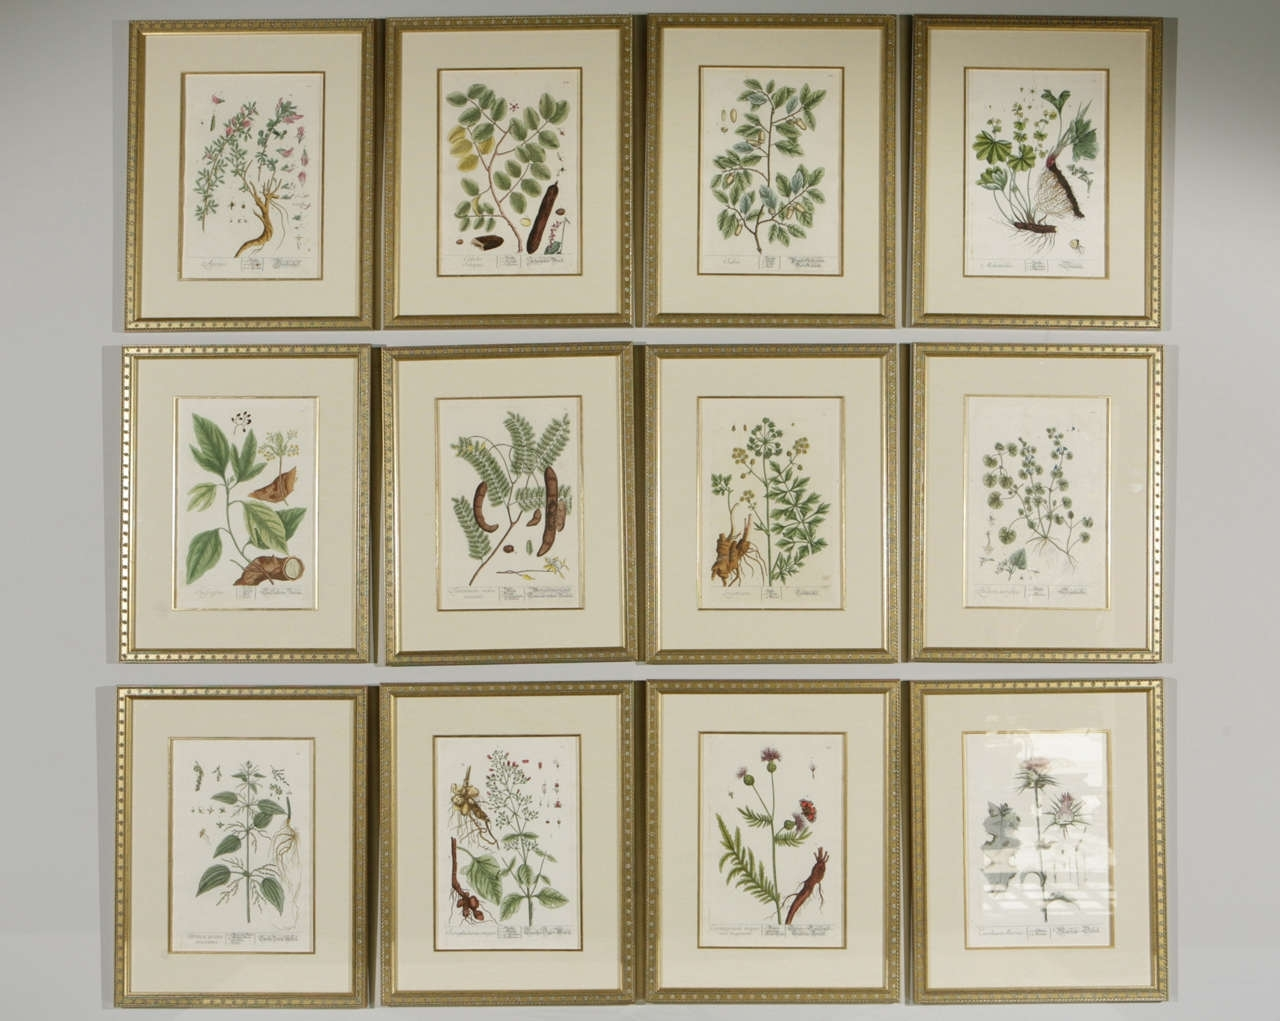 Fresh Framed Botanical Prints | Indoor & Outdoor Decor For Most Current Framed Botanical Art Prints (Gallery 2 of 15)